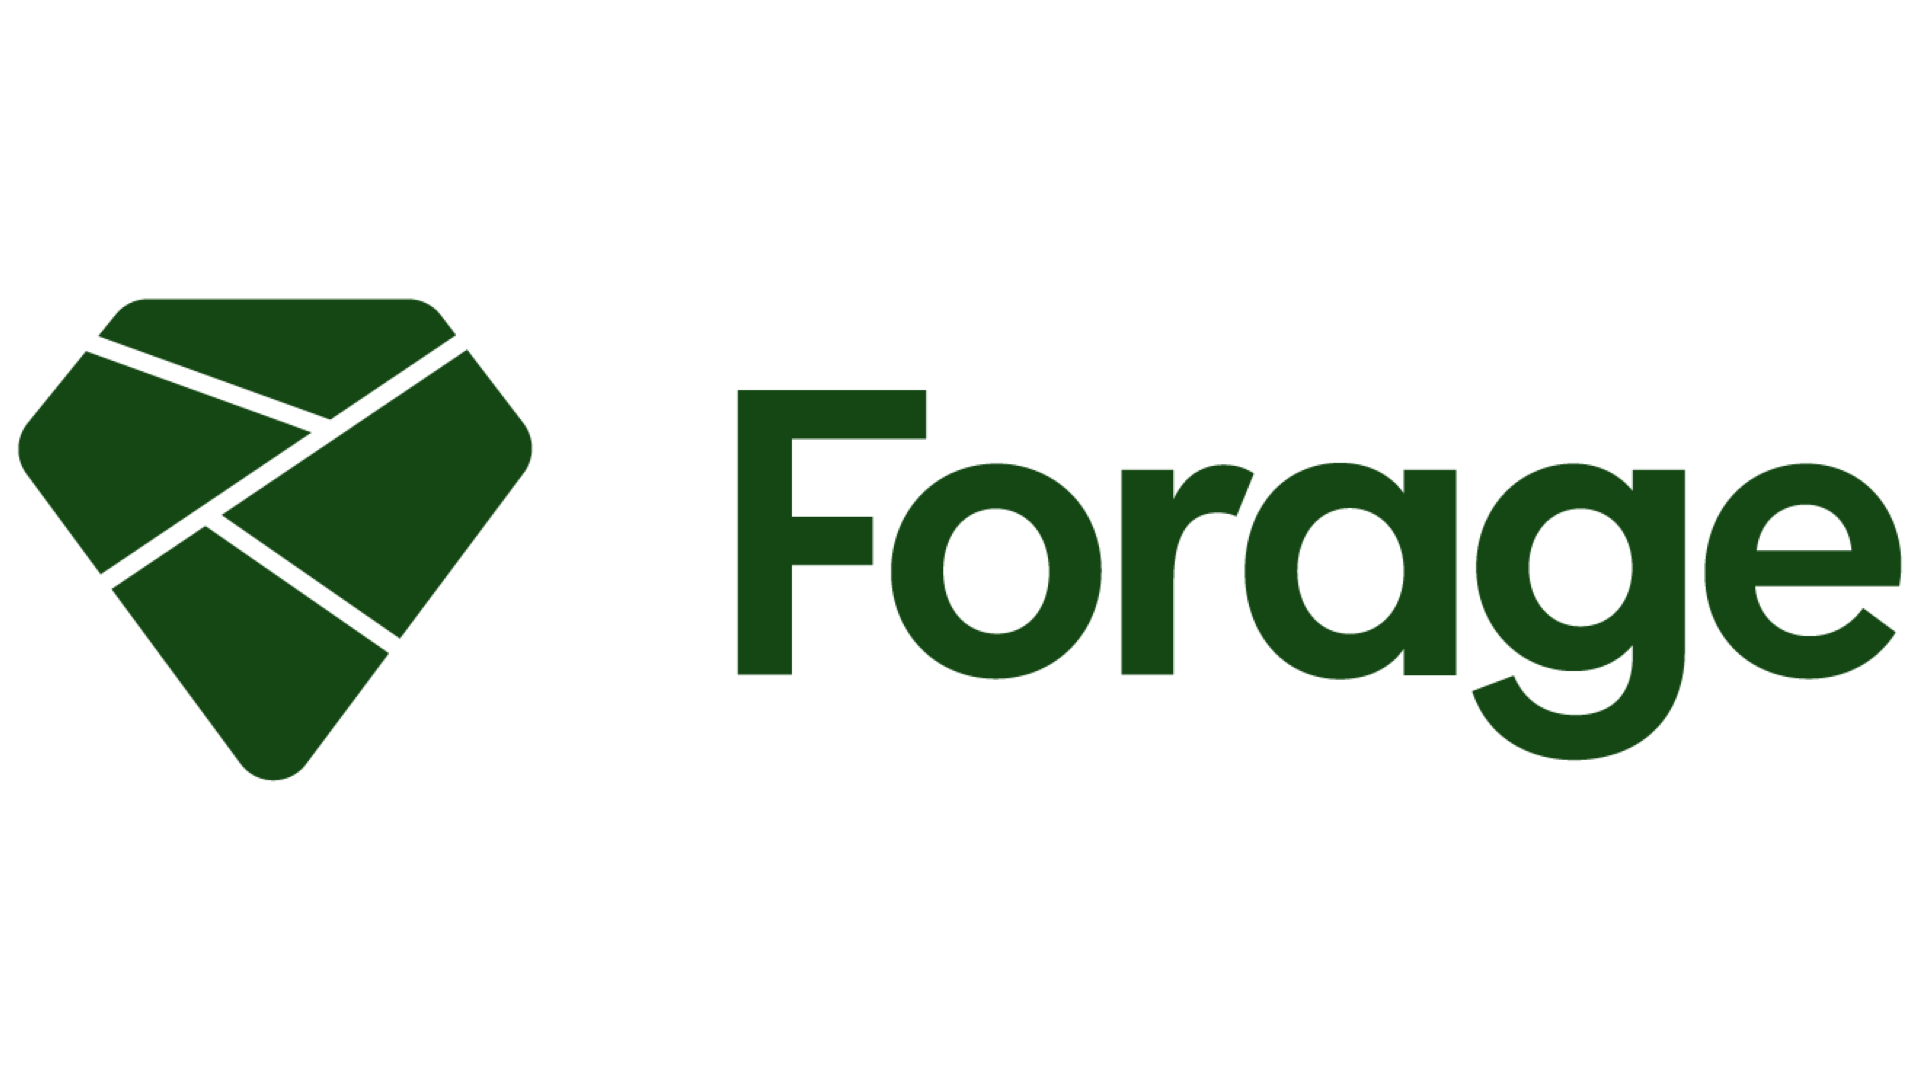 Fiveable partners with Forage to provide career exploration support to students